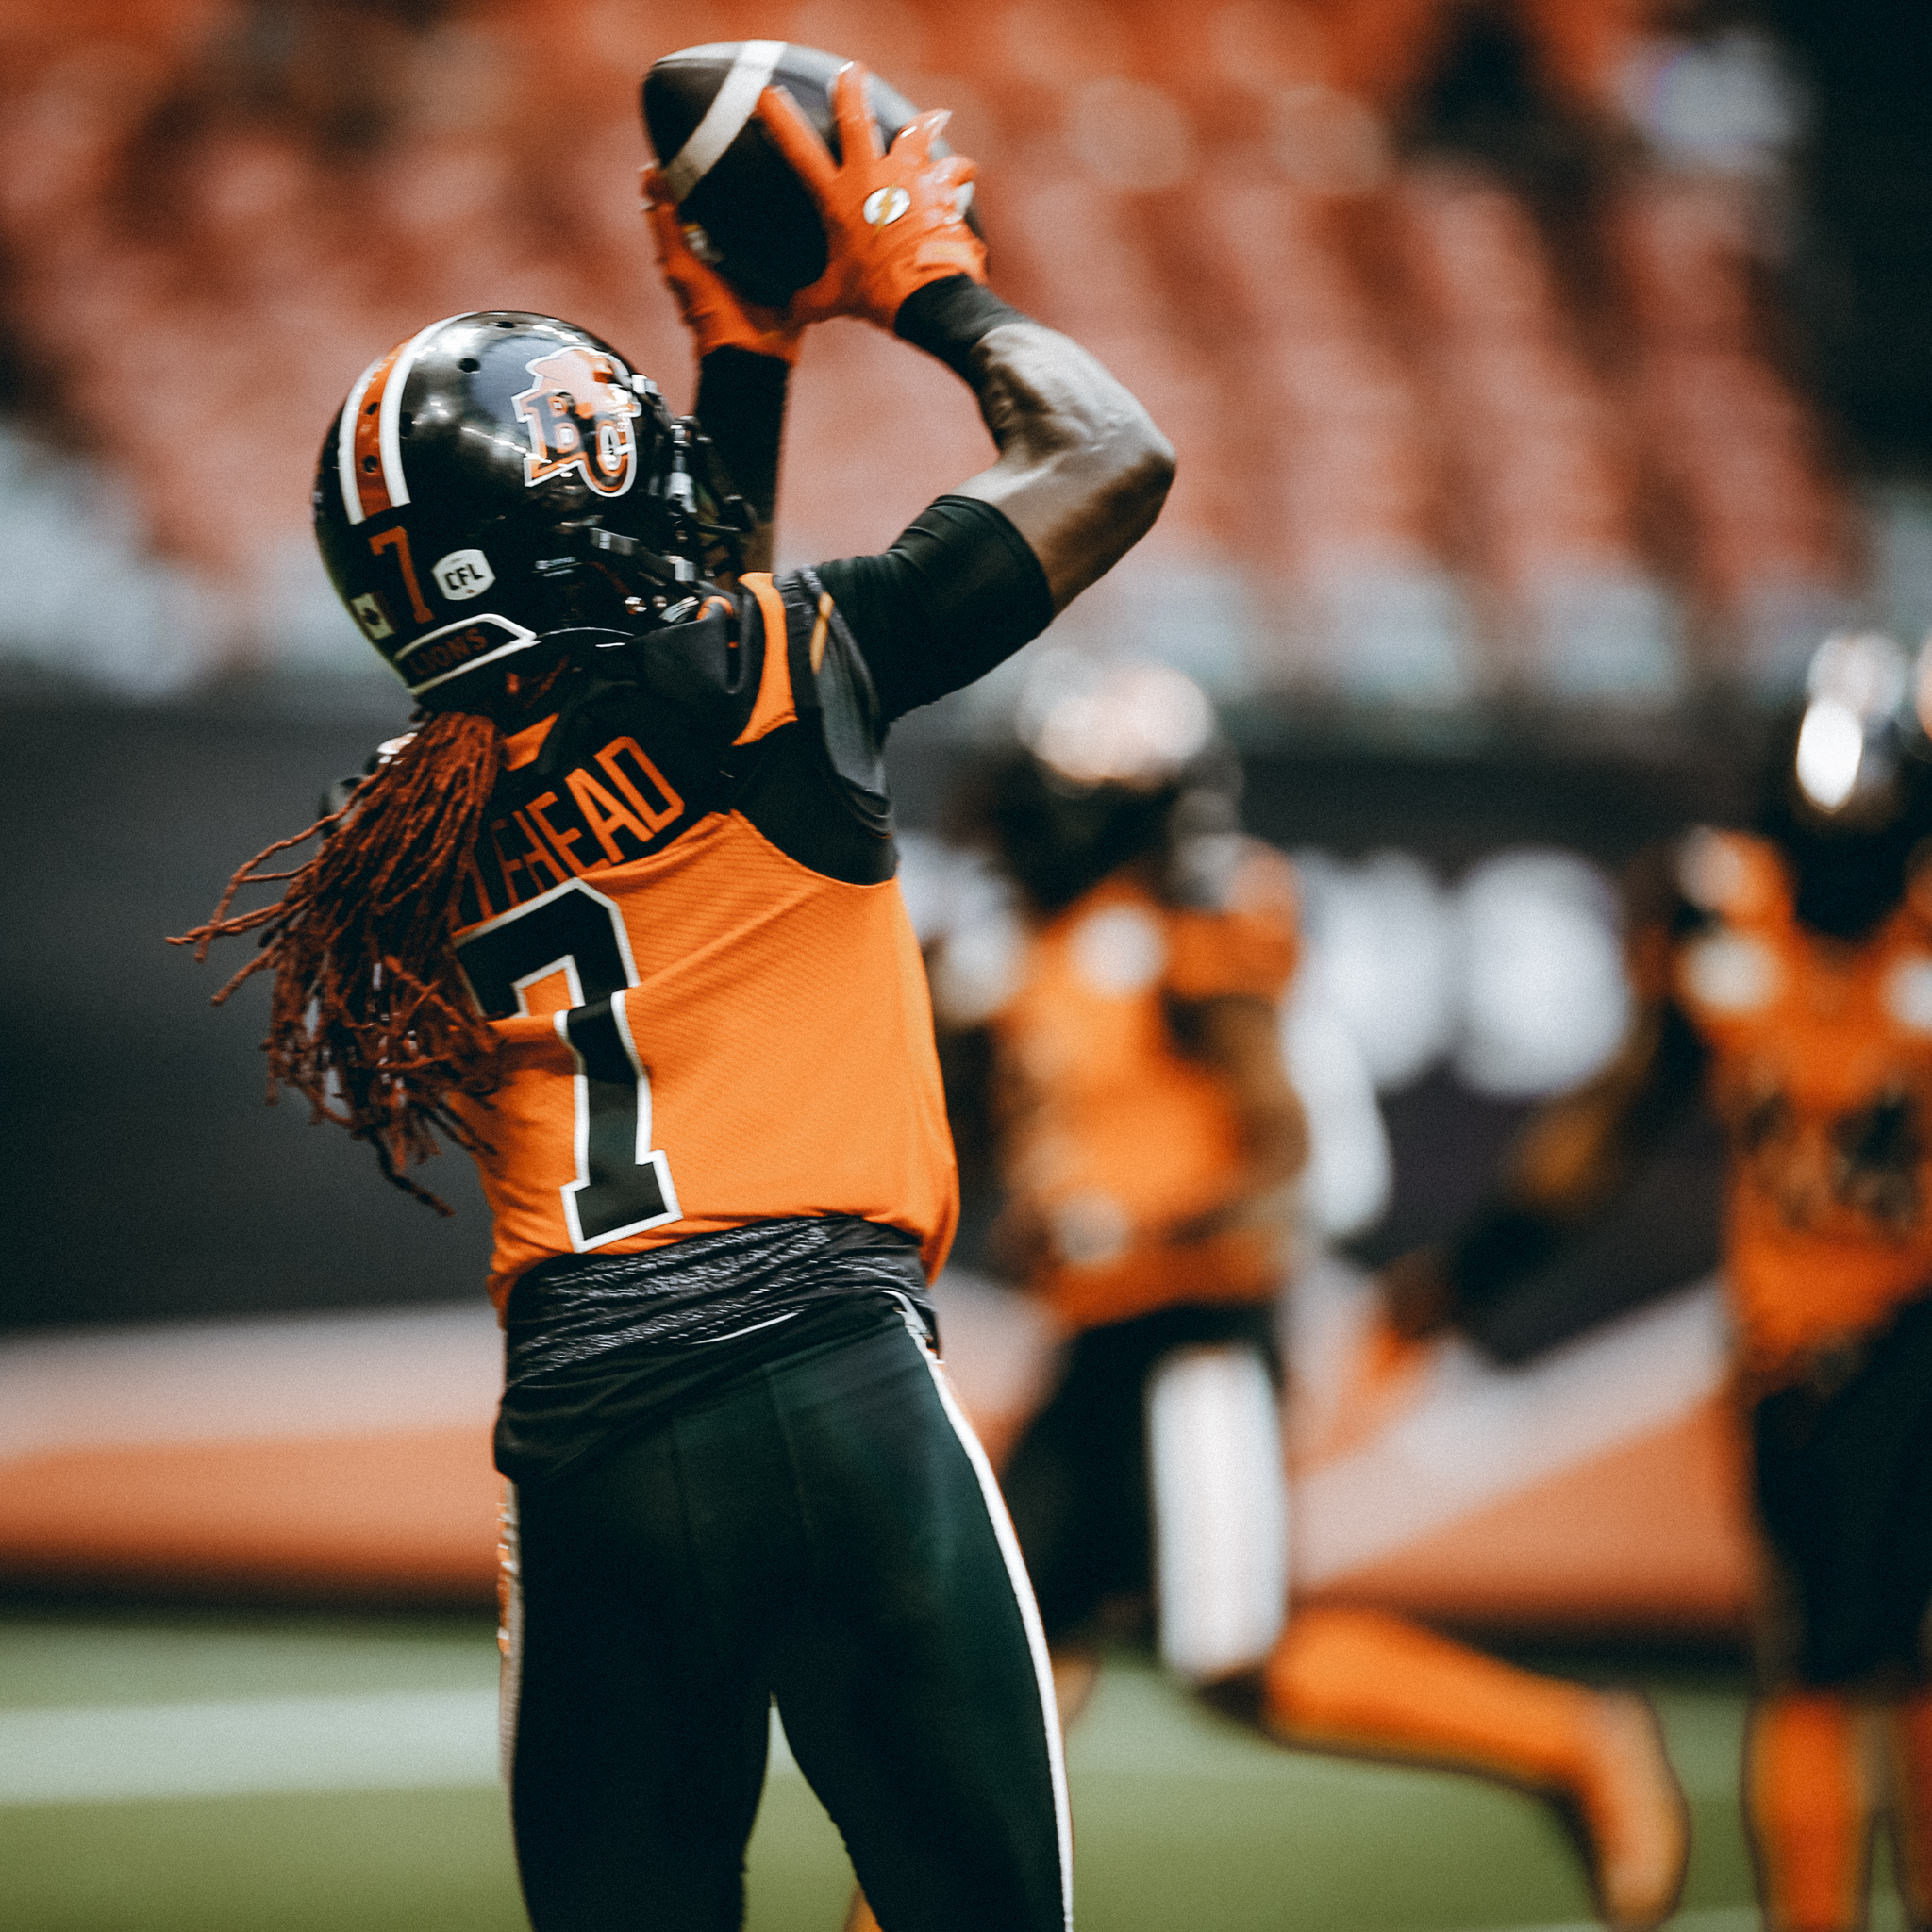 Lions receiver Lucky Whitehead has demonstrated the ability to strike fast at any given time. No different than some of his favourite wild animals.